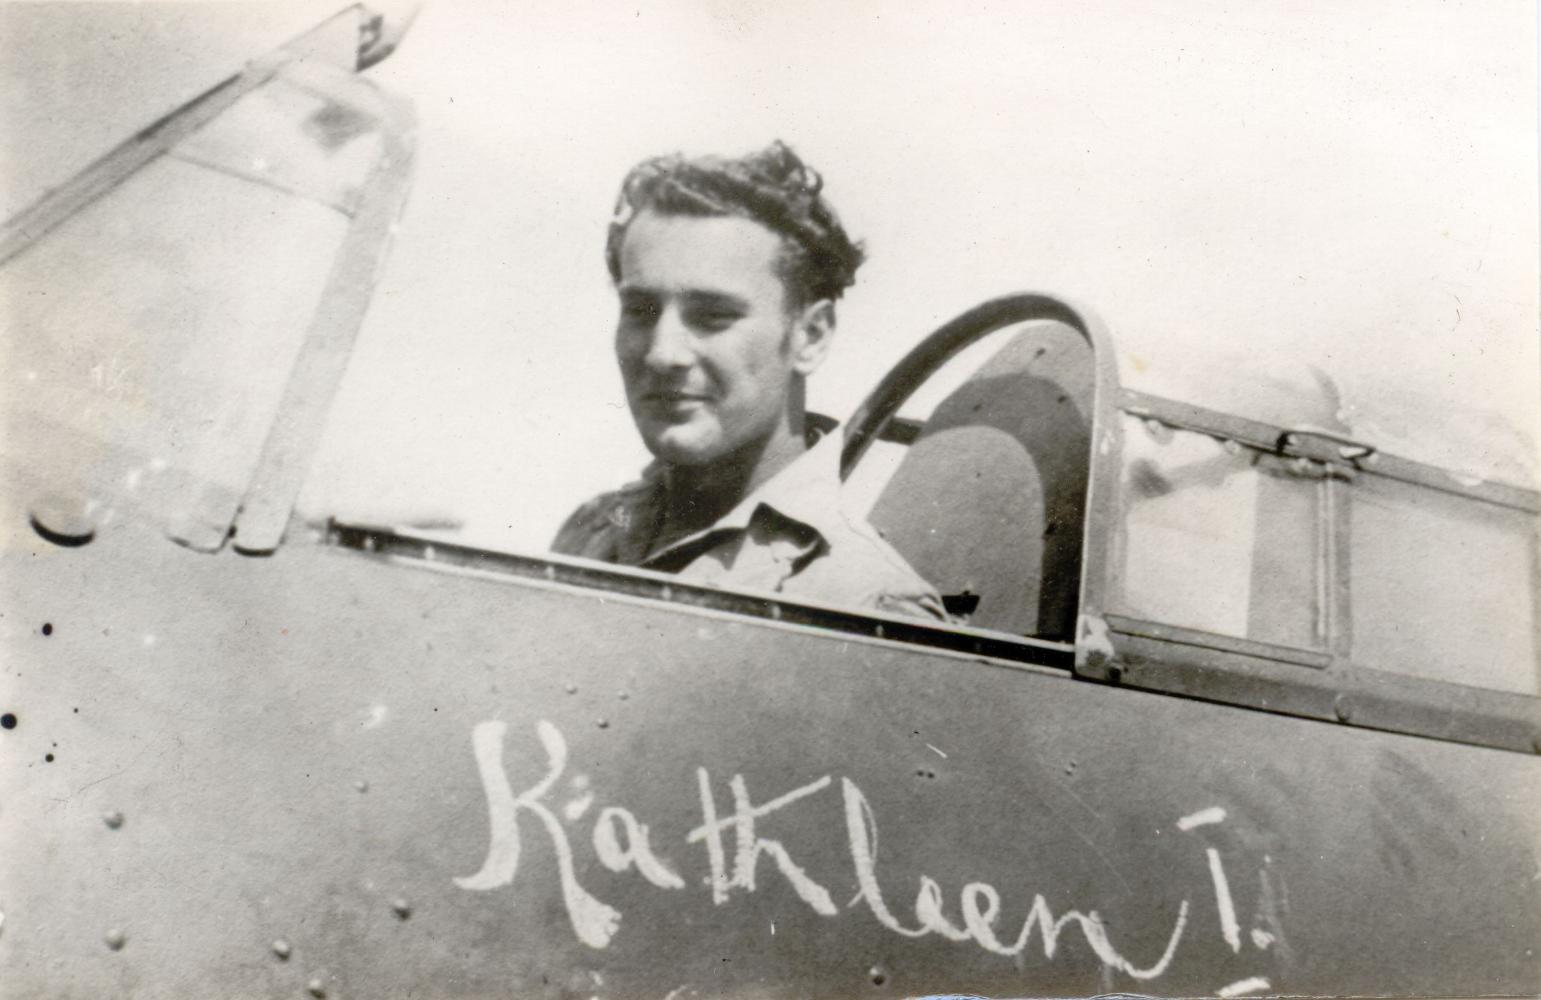 Aircrew RAF 45Sqn and 46Sqn Derrick Sykes in his Hurricane named Kathleen I North Africa 1941 42 01